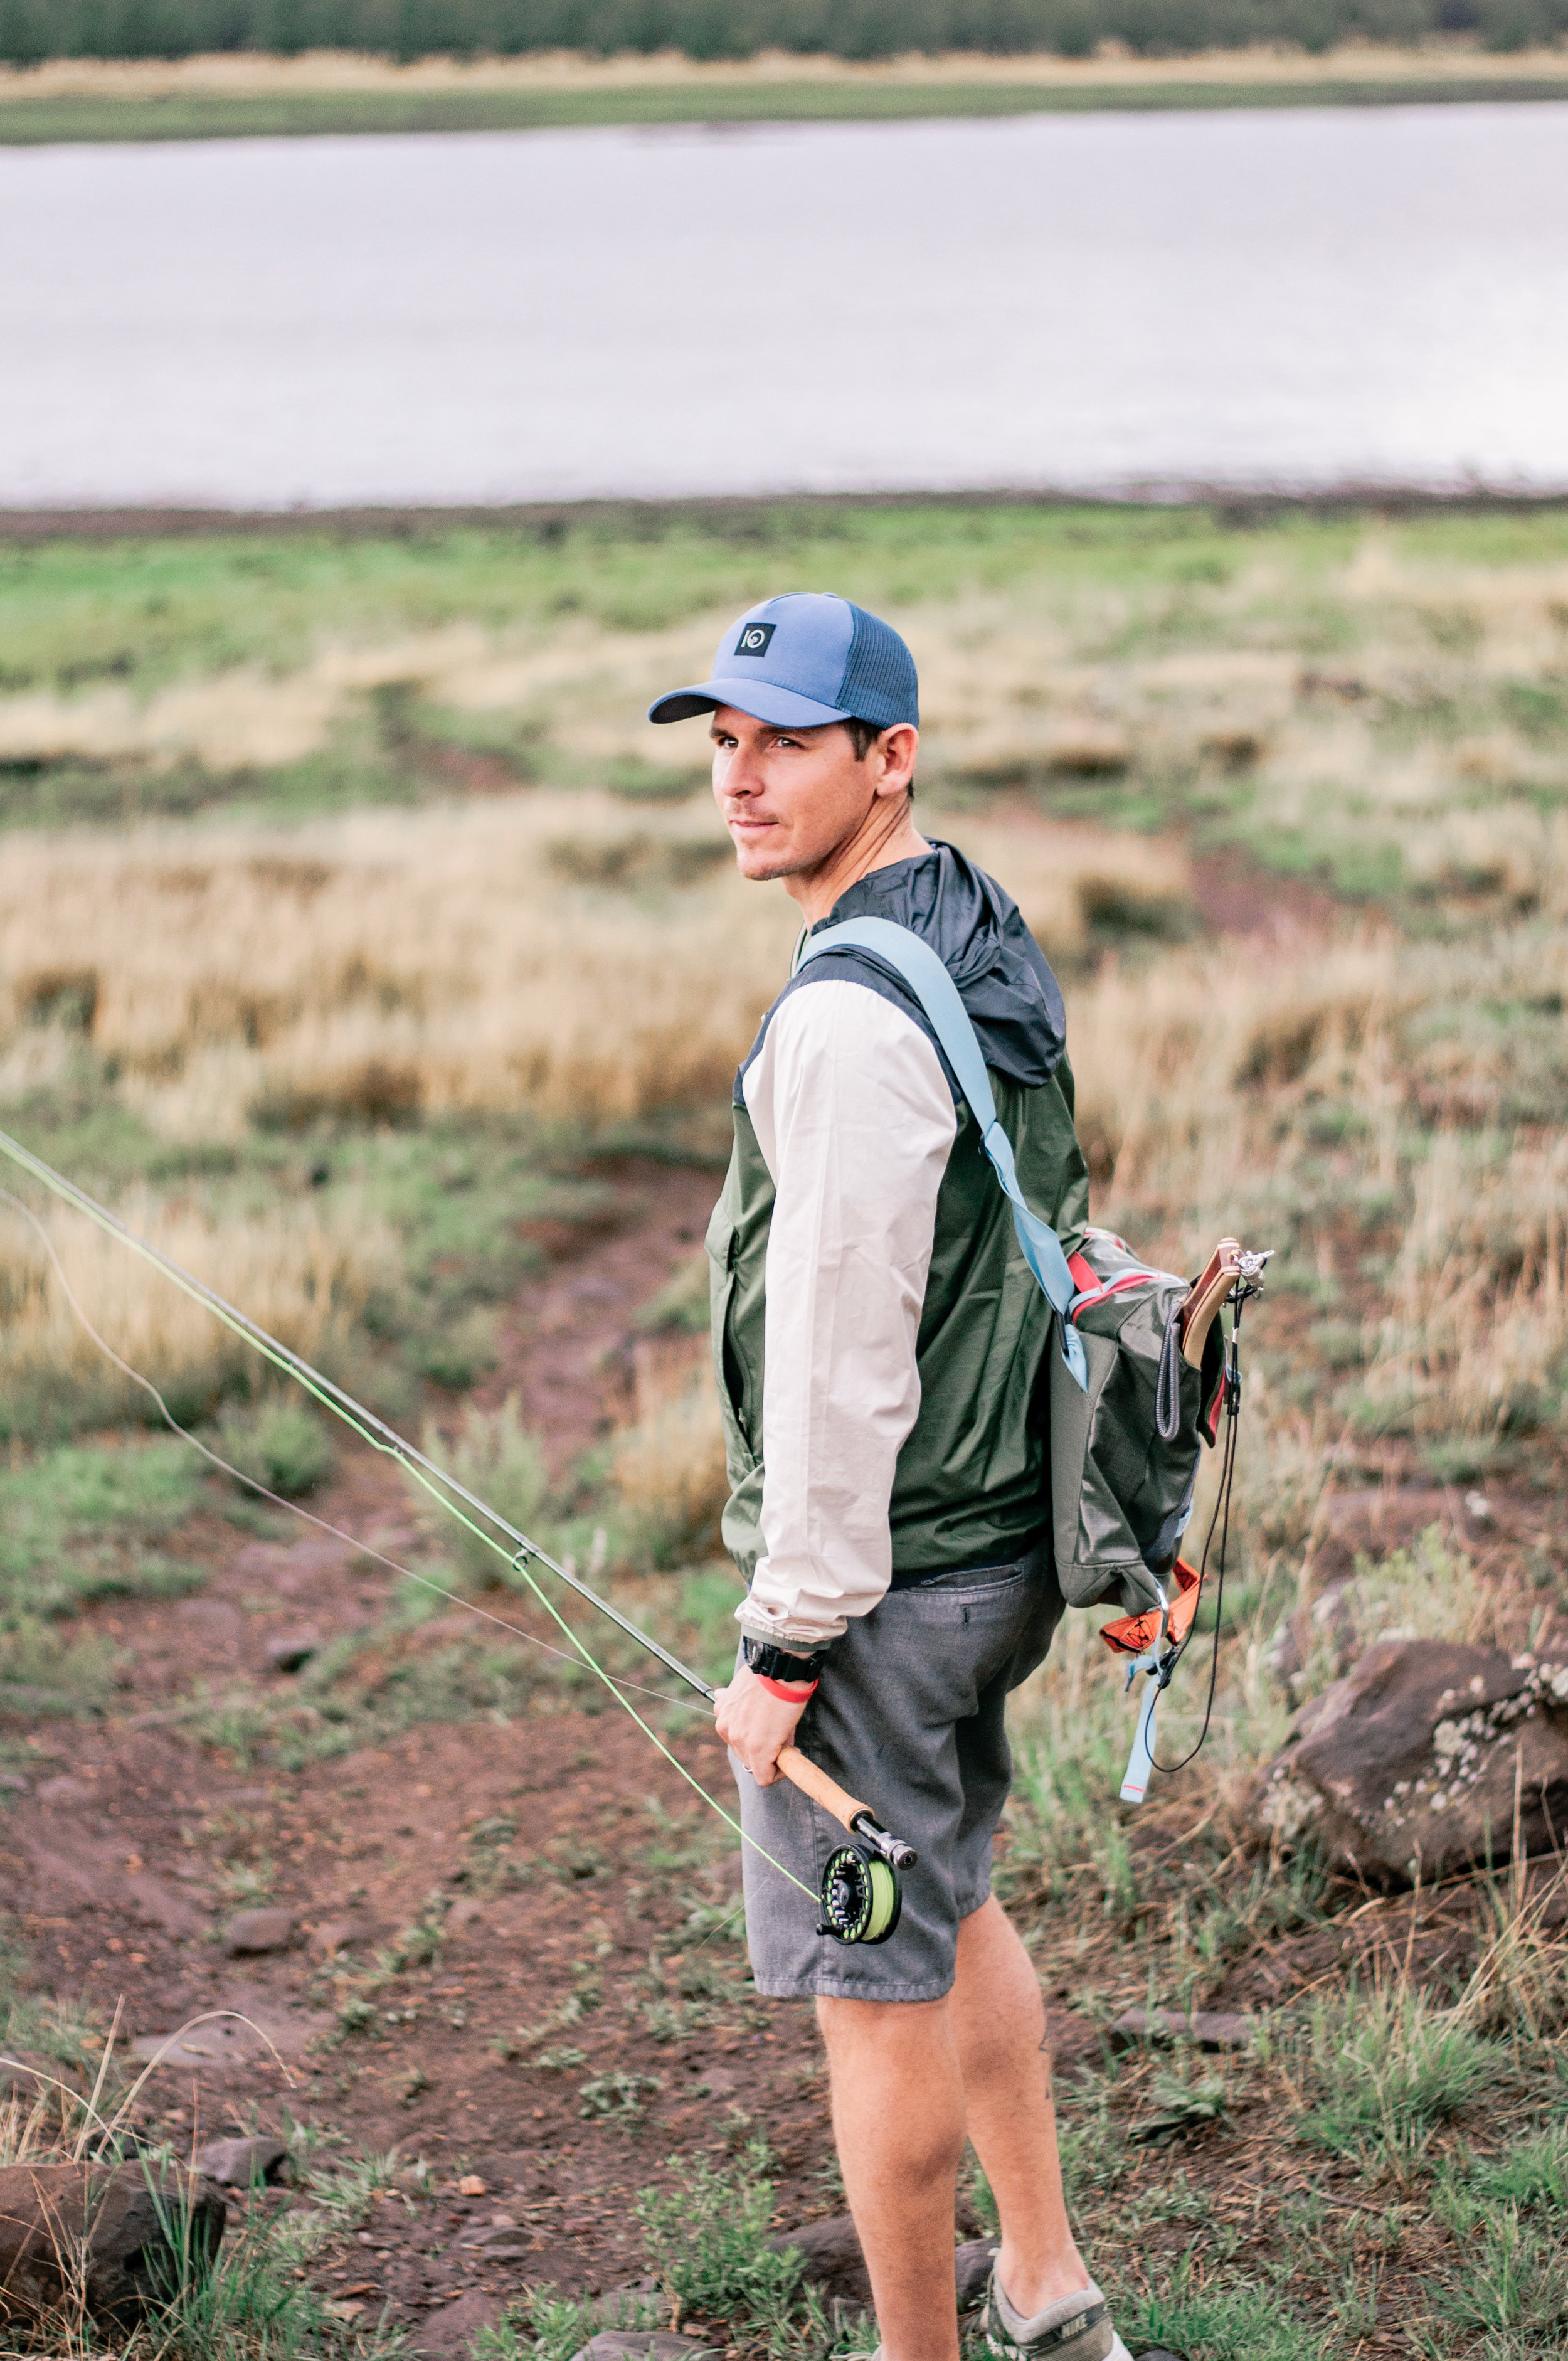 Rugged Outdoor Clothing Brands for Men